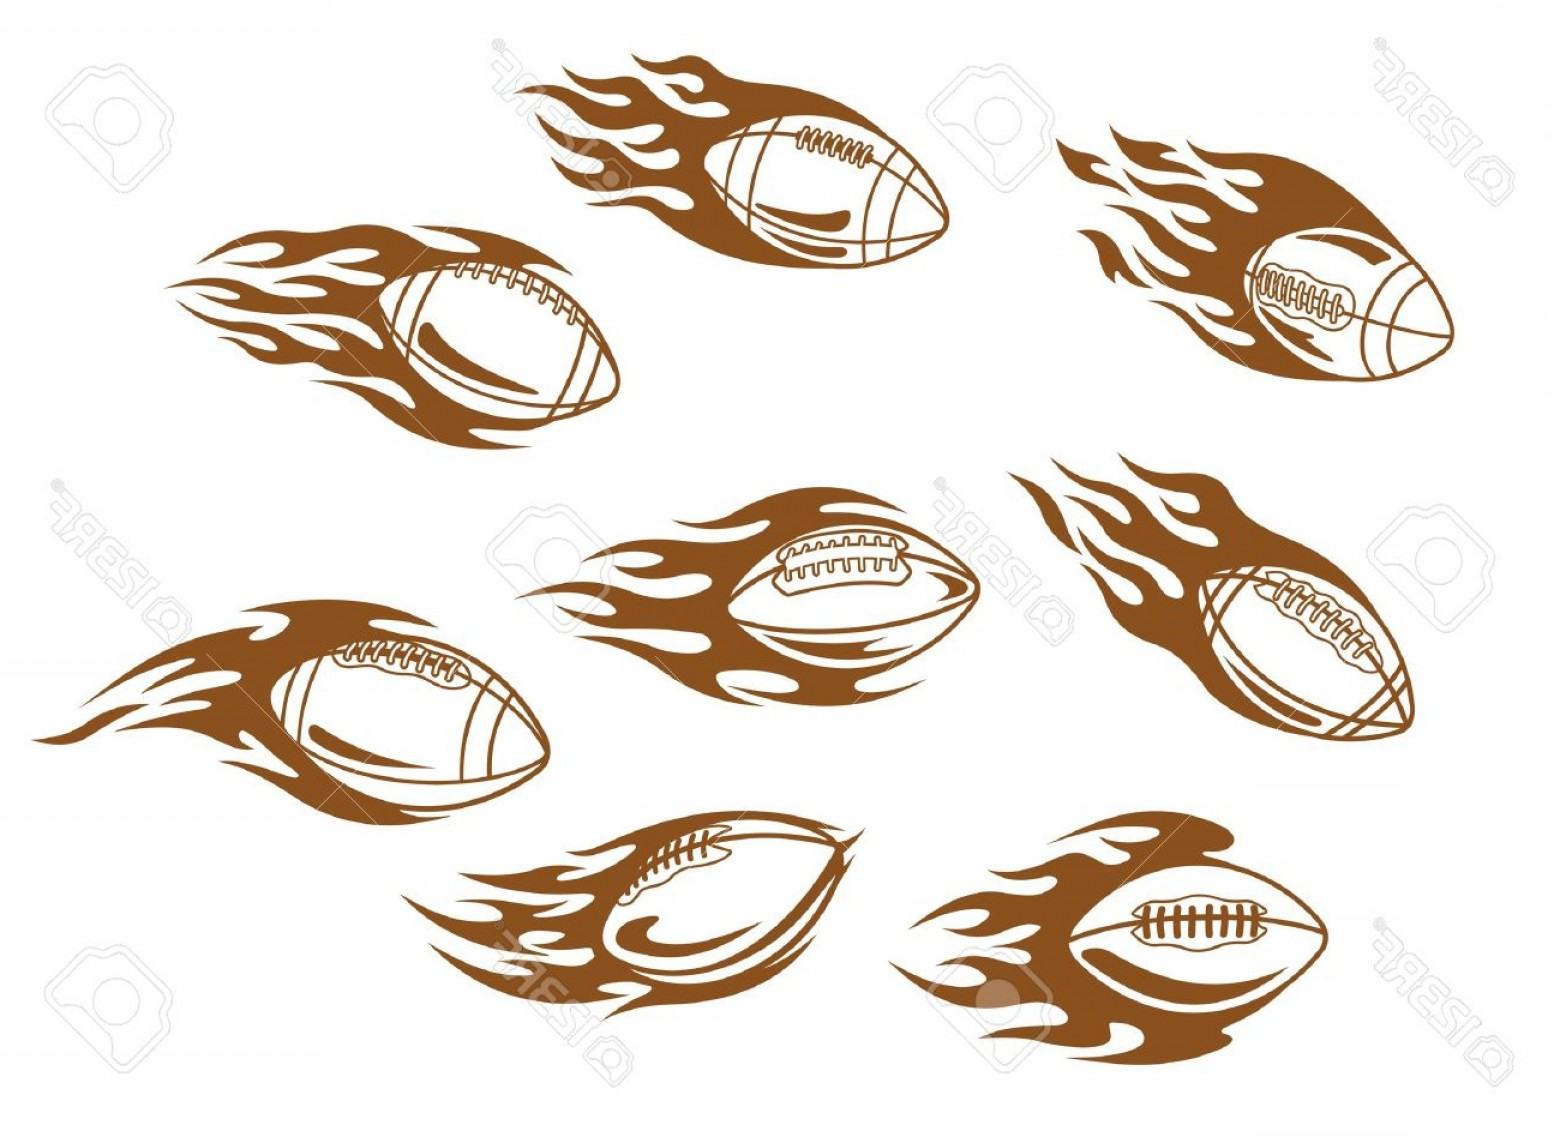 Tribal Football Vector Art: Photorugby And Football Tattoos With Tribal Flames